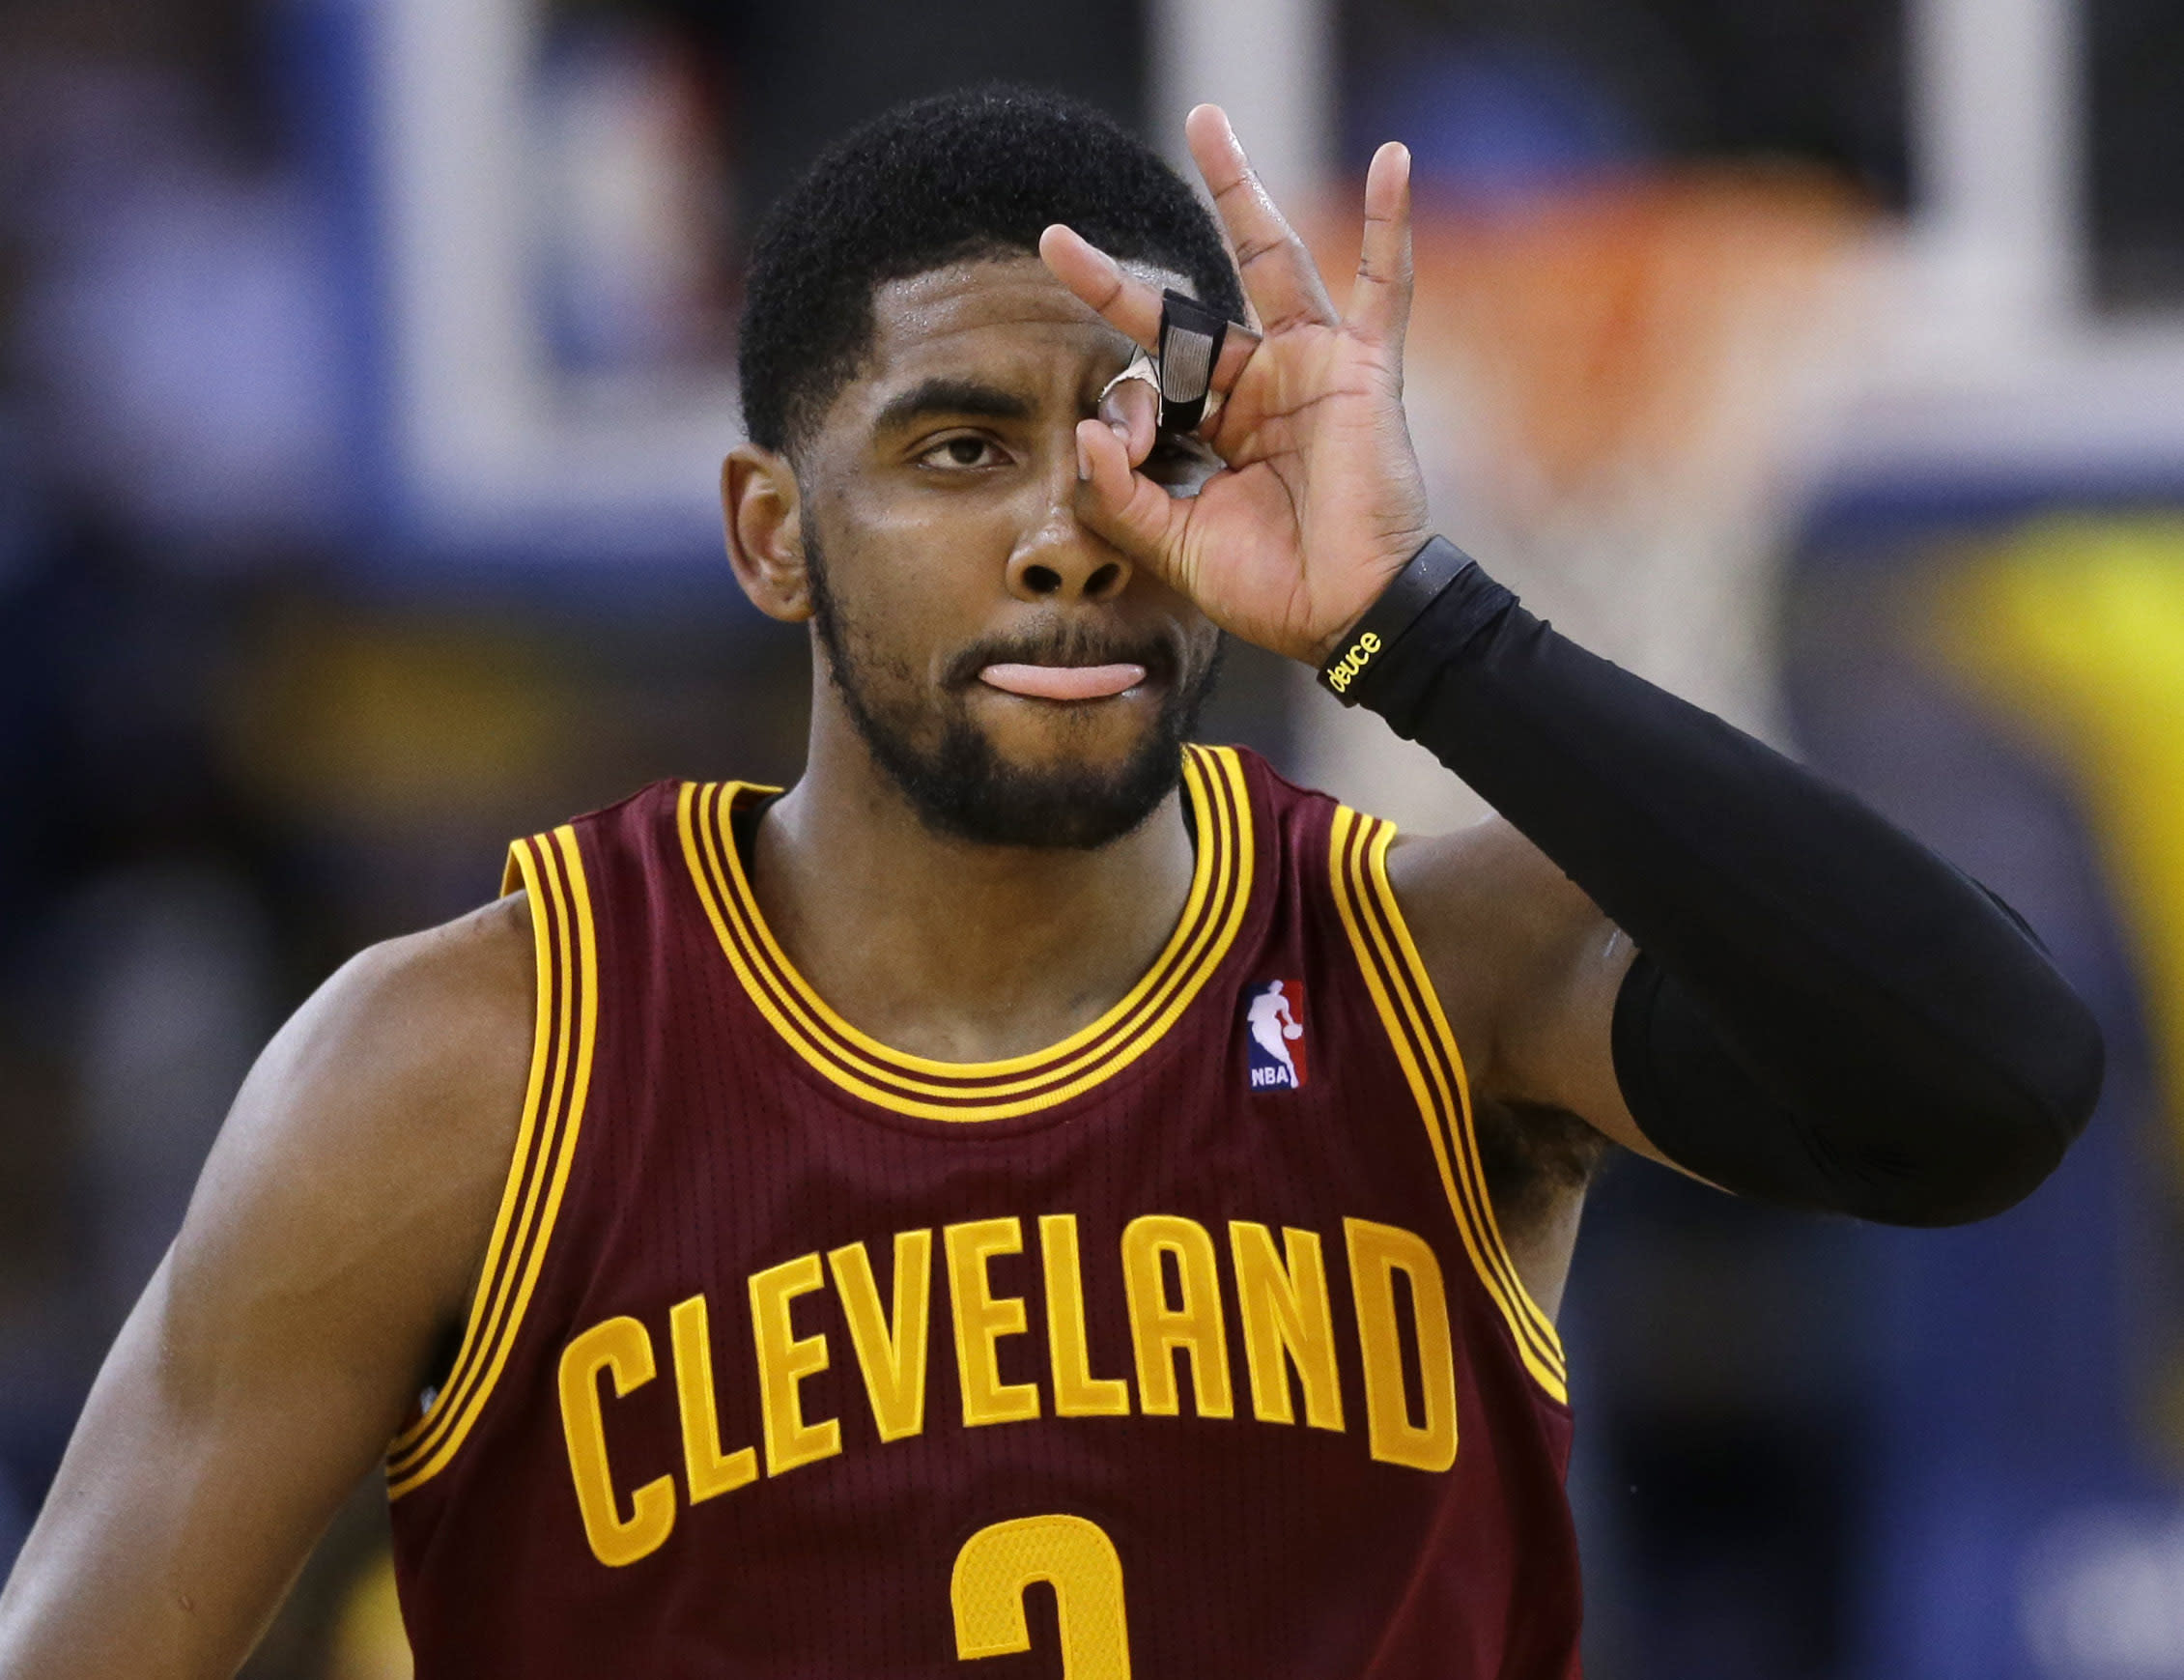 d10031a1b Cavs' Irving out 2 weeks with biceps injury